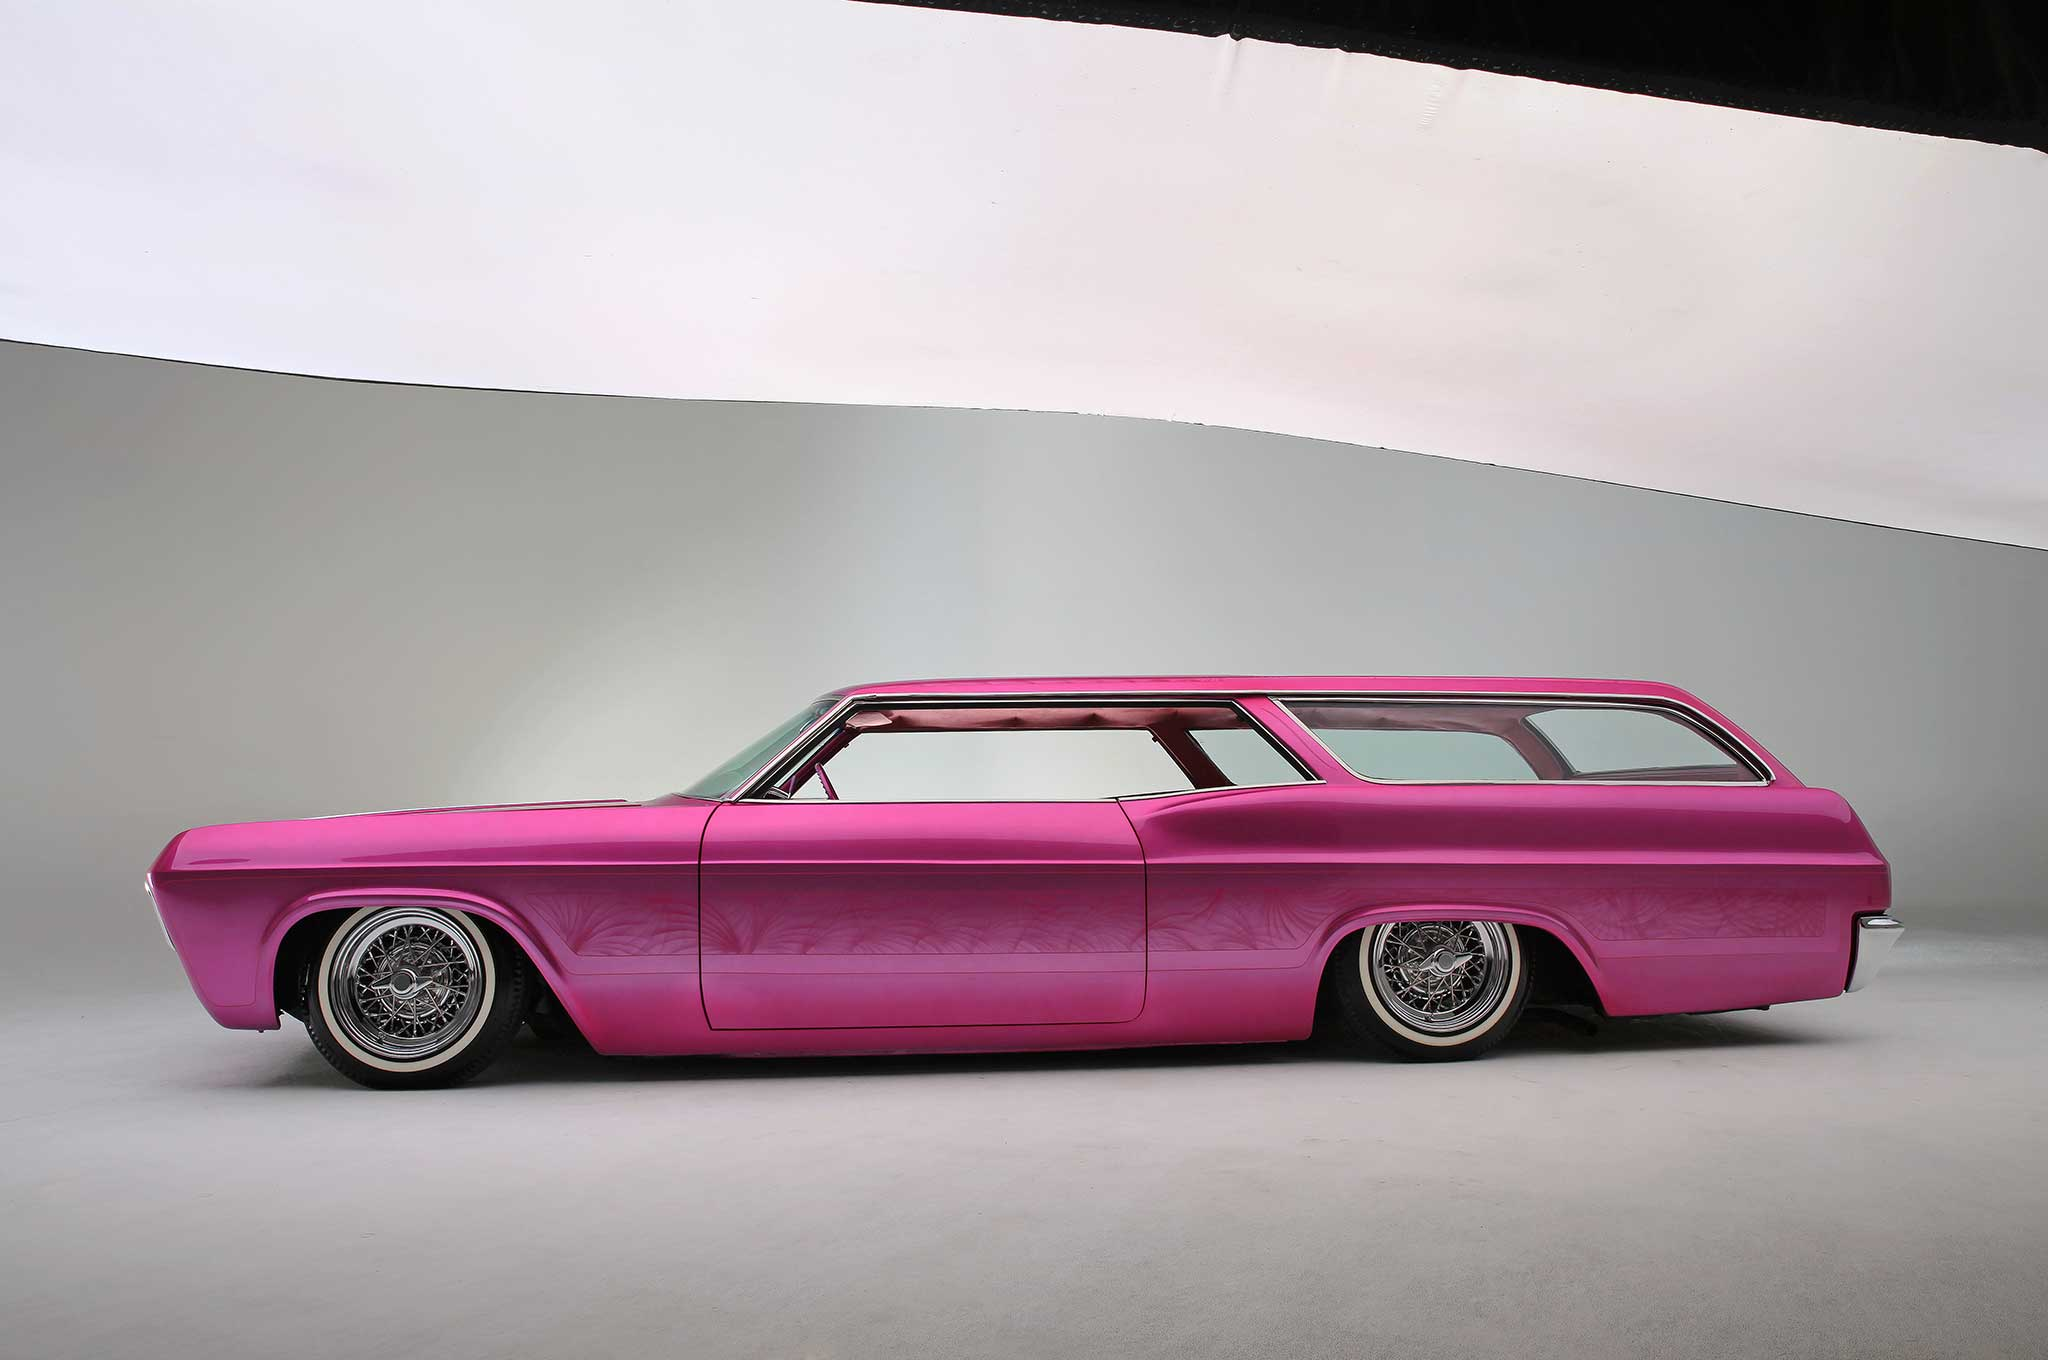 Two Door 65 Impala Wagon That Turned A Lot Of Heads At